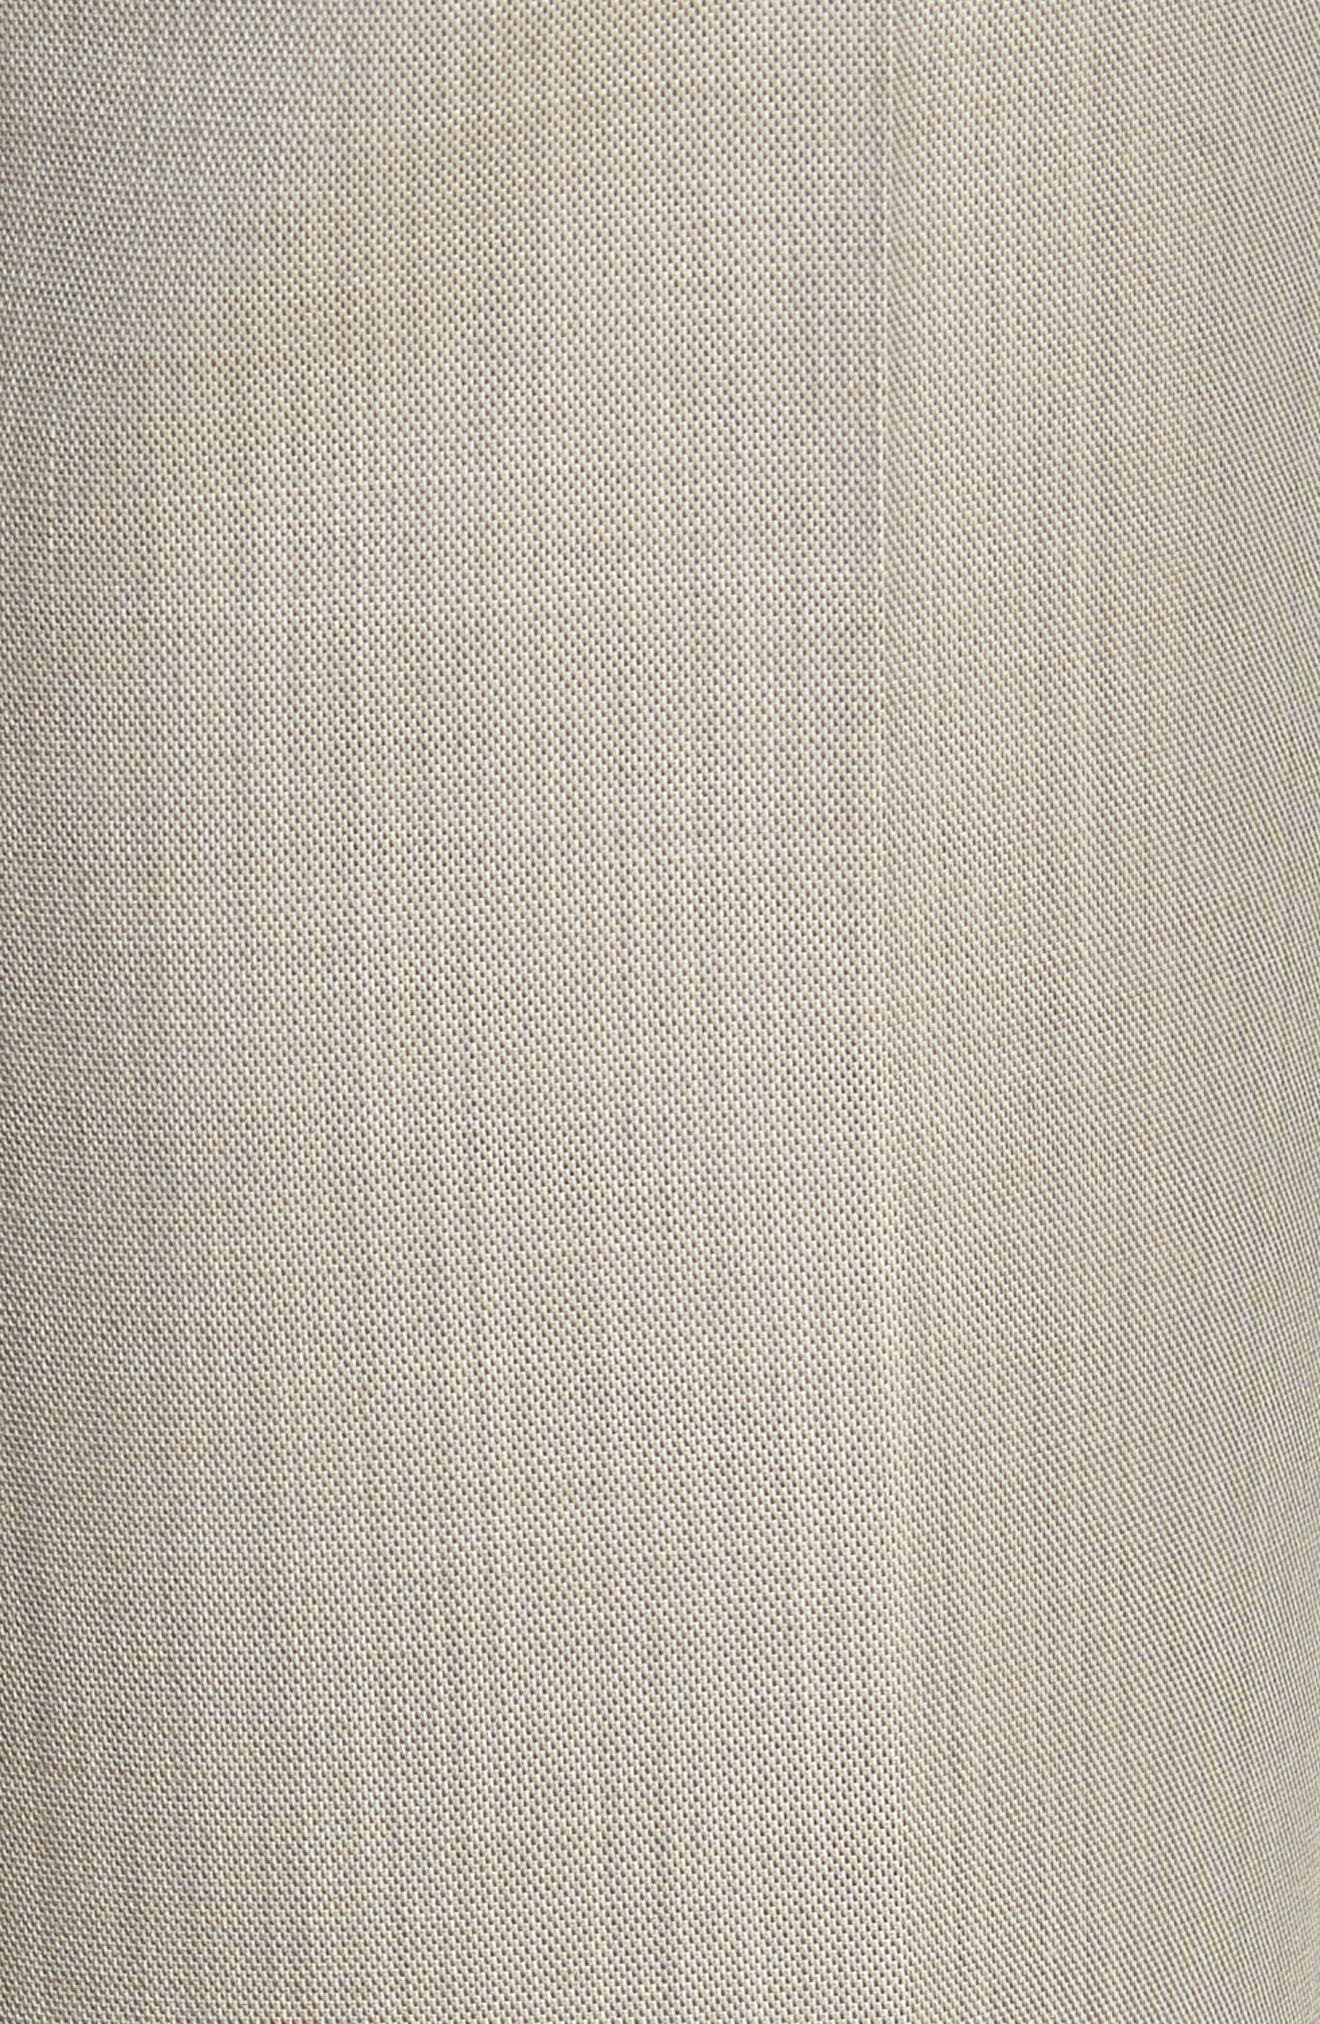 Flat Front Sharkskin Wool Trousers,                             Alternate thumbnail 5, color,                             SAND